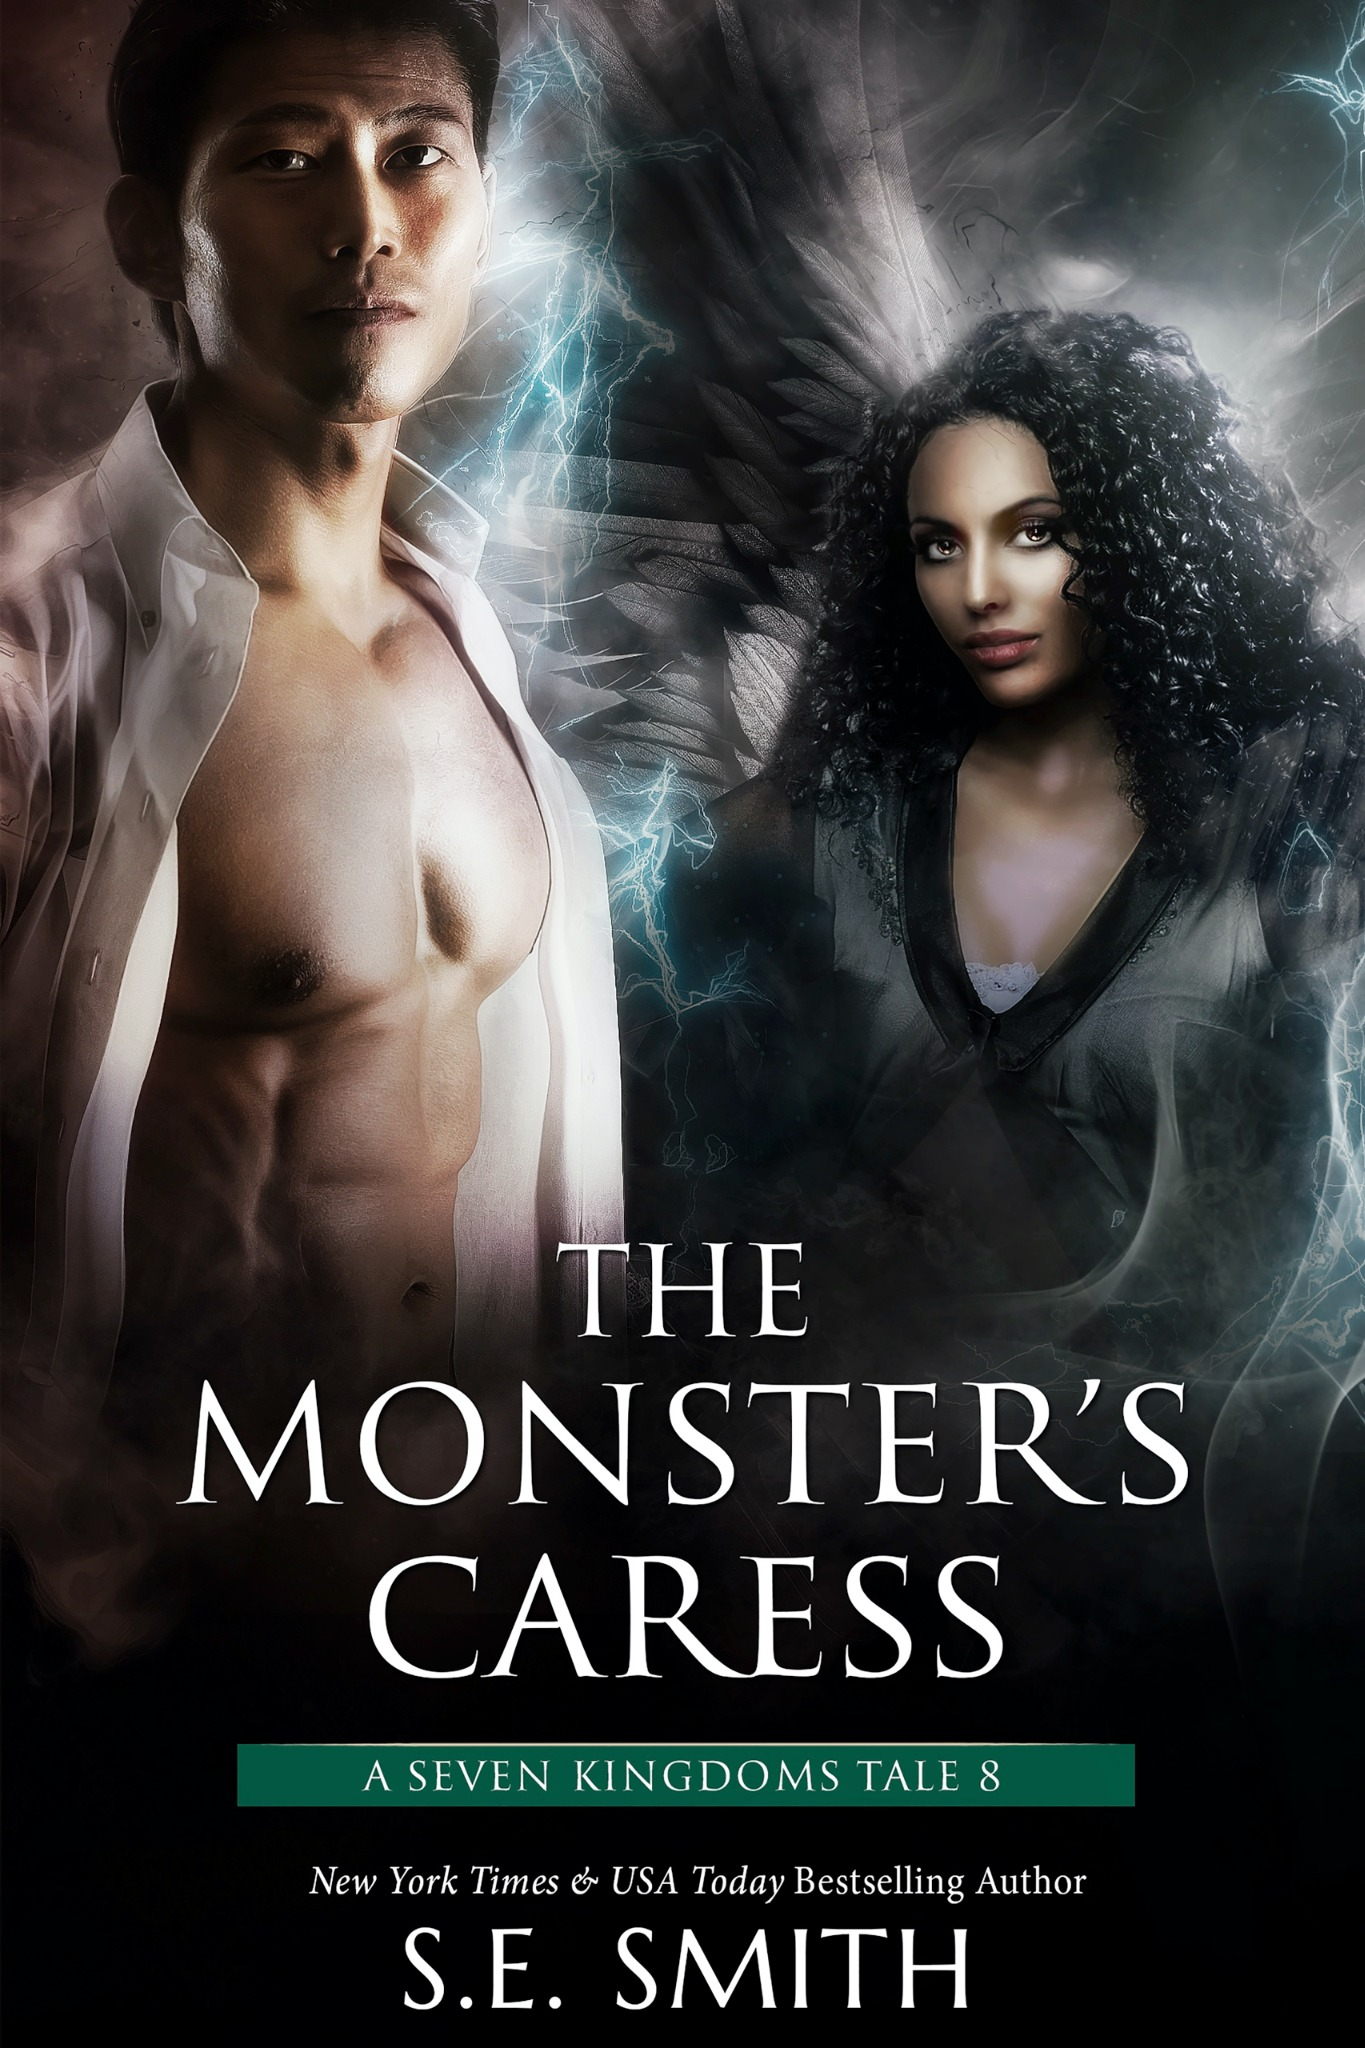 The Monster's Caress: A Seven Kingdoms Tale 8 (ebook: kindle and epub)